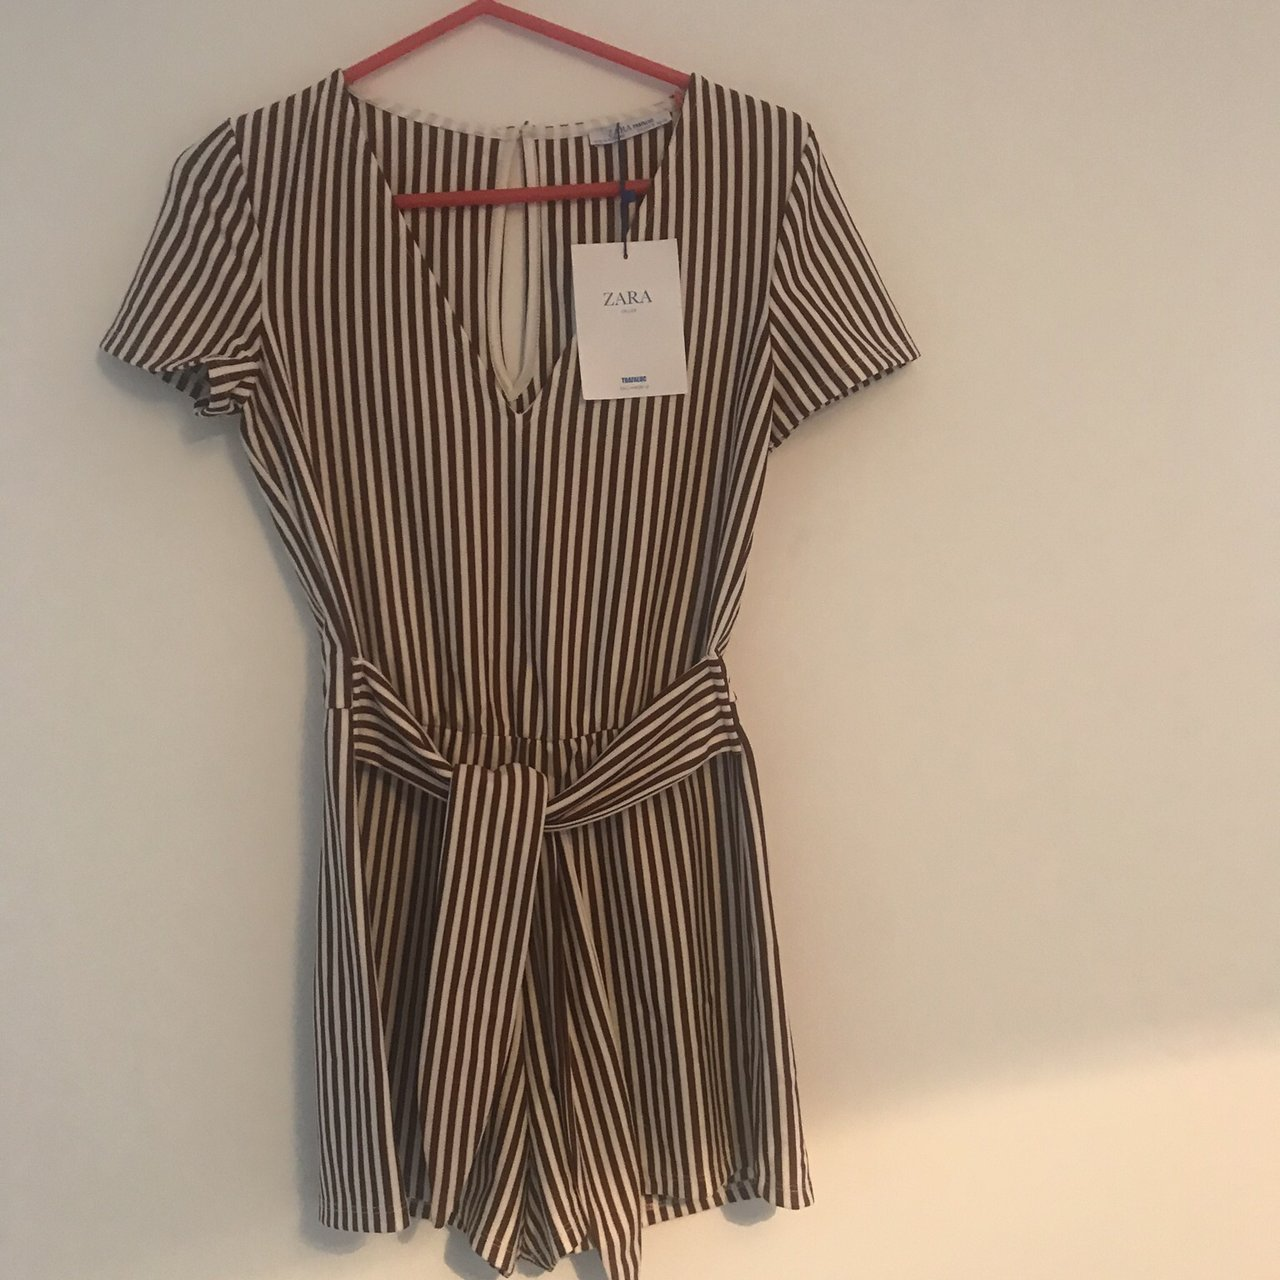 0ccaae13b90 Stripe Playsuit by Zara  size Small. New with tags! V-neck - Depop